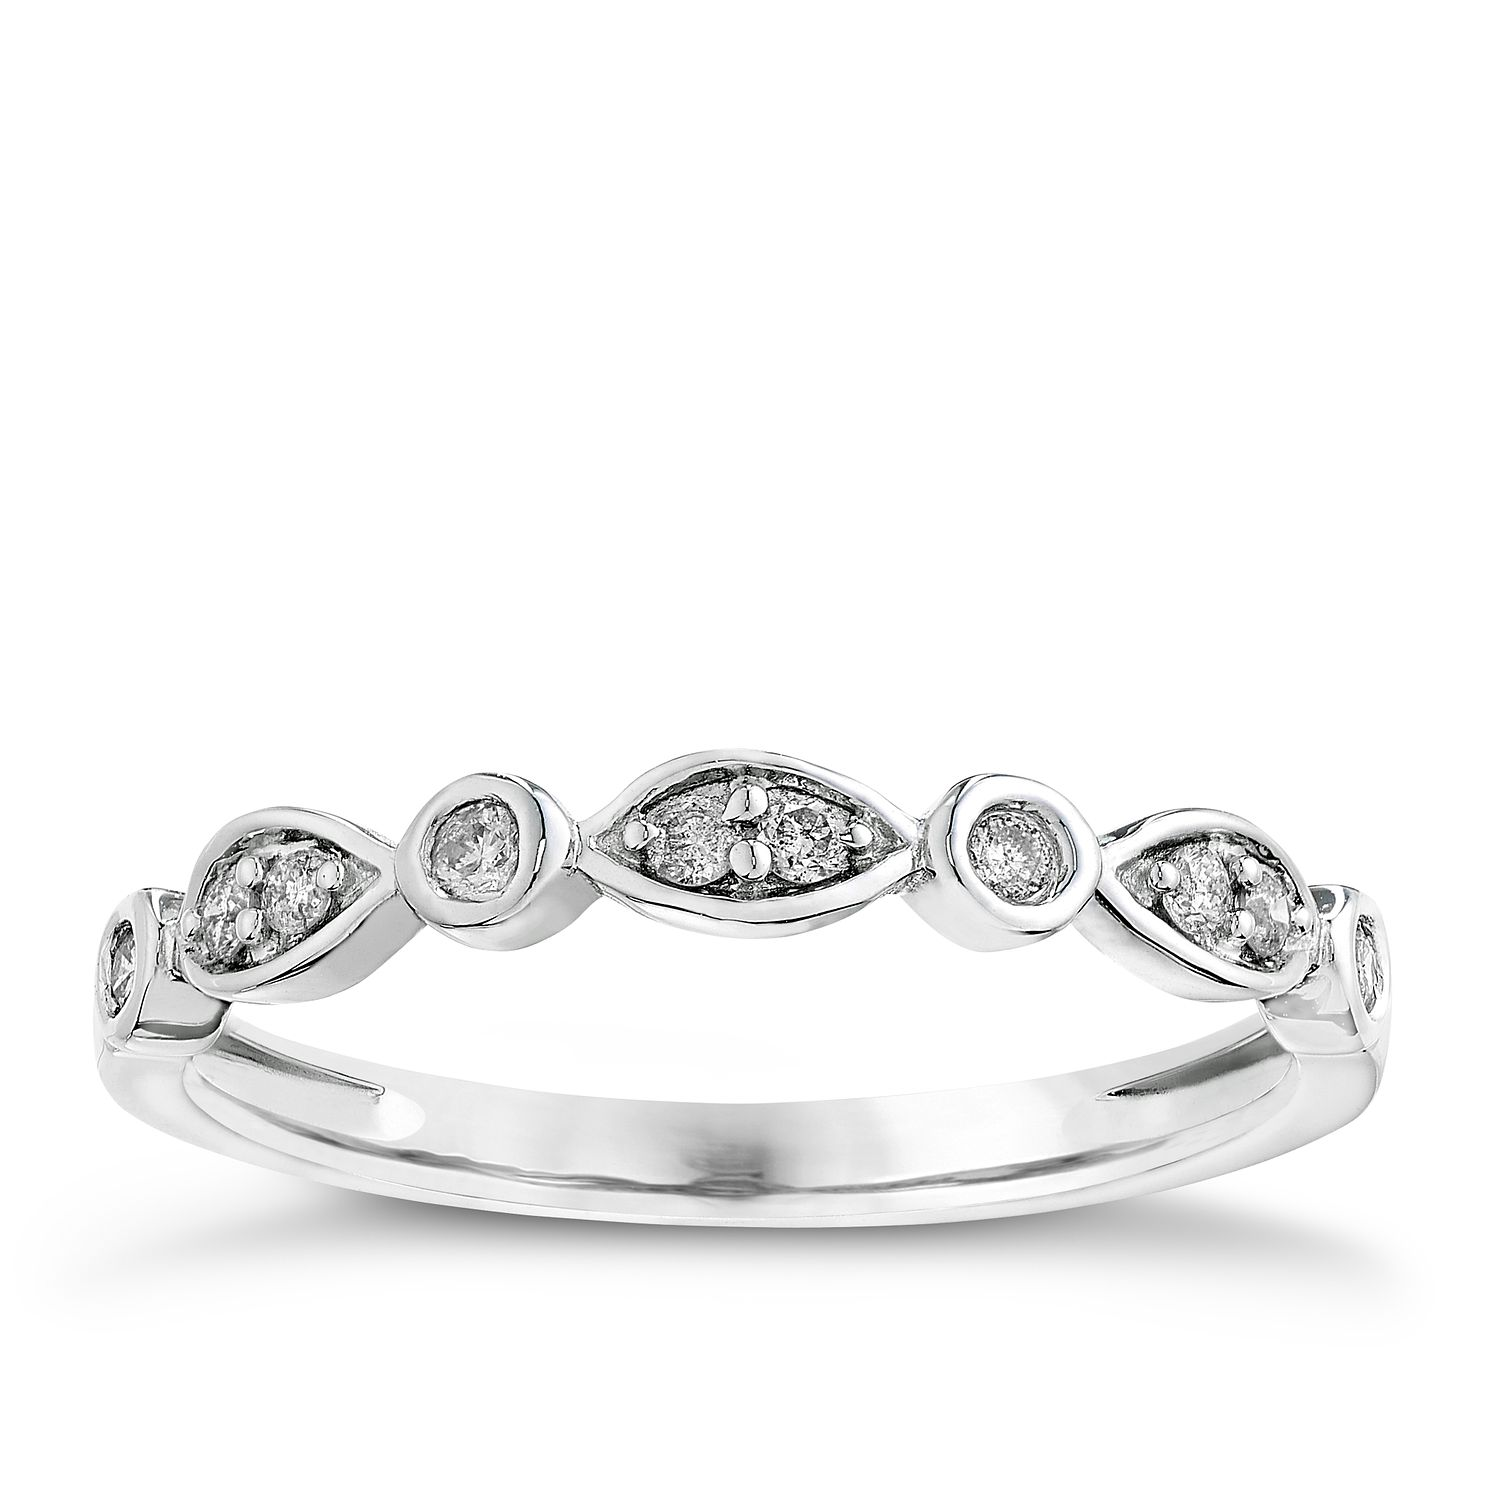 solitaire unique wedding help chosing ring engagement band ideas plain paved paired rings my or with pave diamond